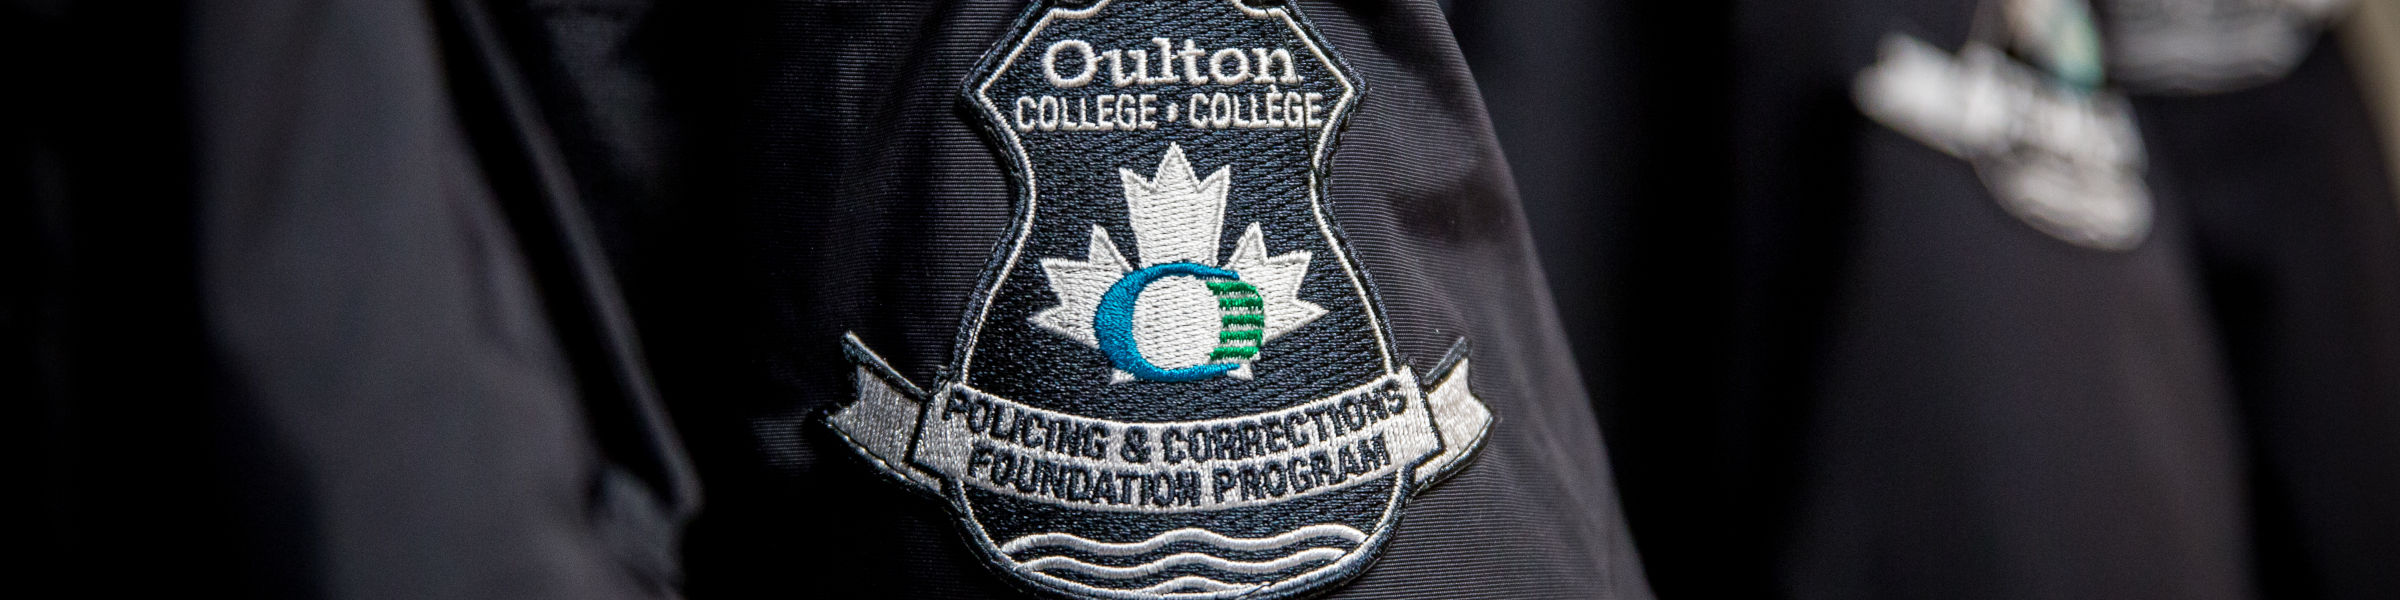 Policing and Corrections Foundation